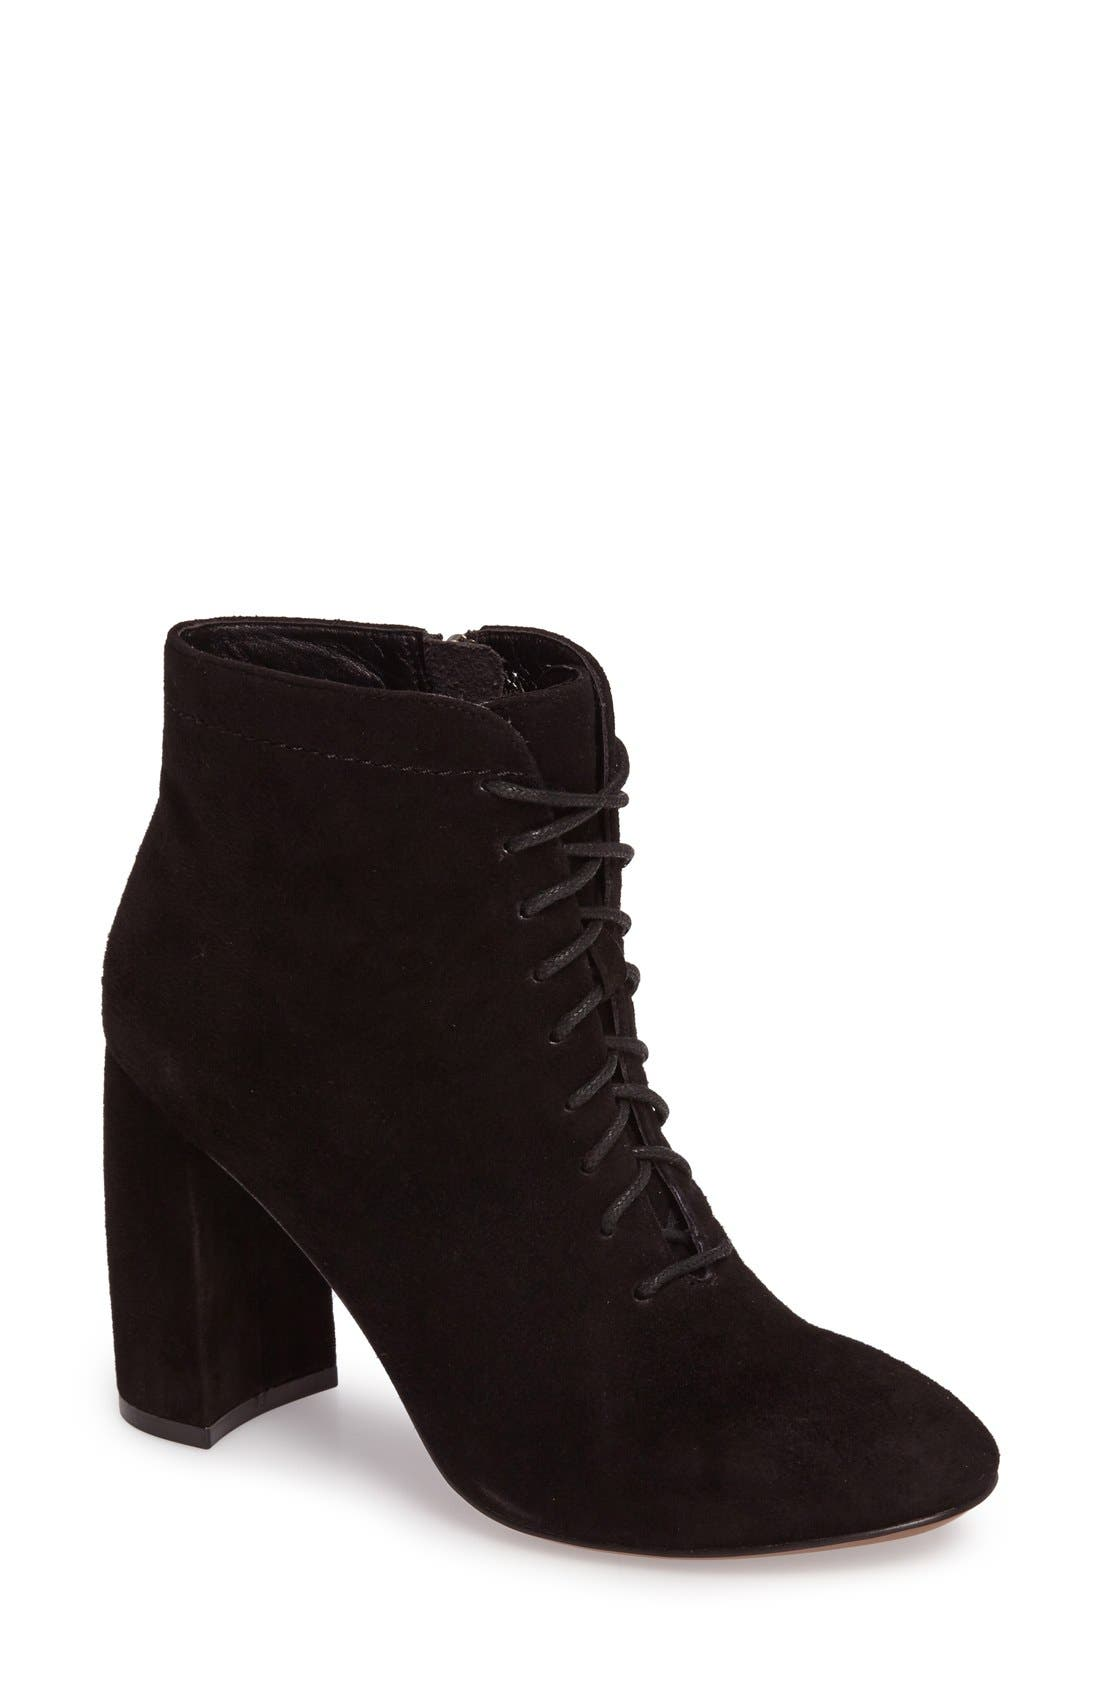 Main Image - Linea Paolo Brandy Lace-Up Zip Bootie (Women)